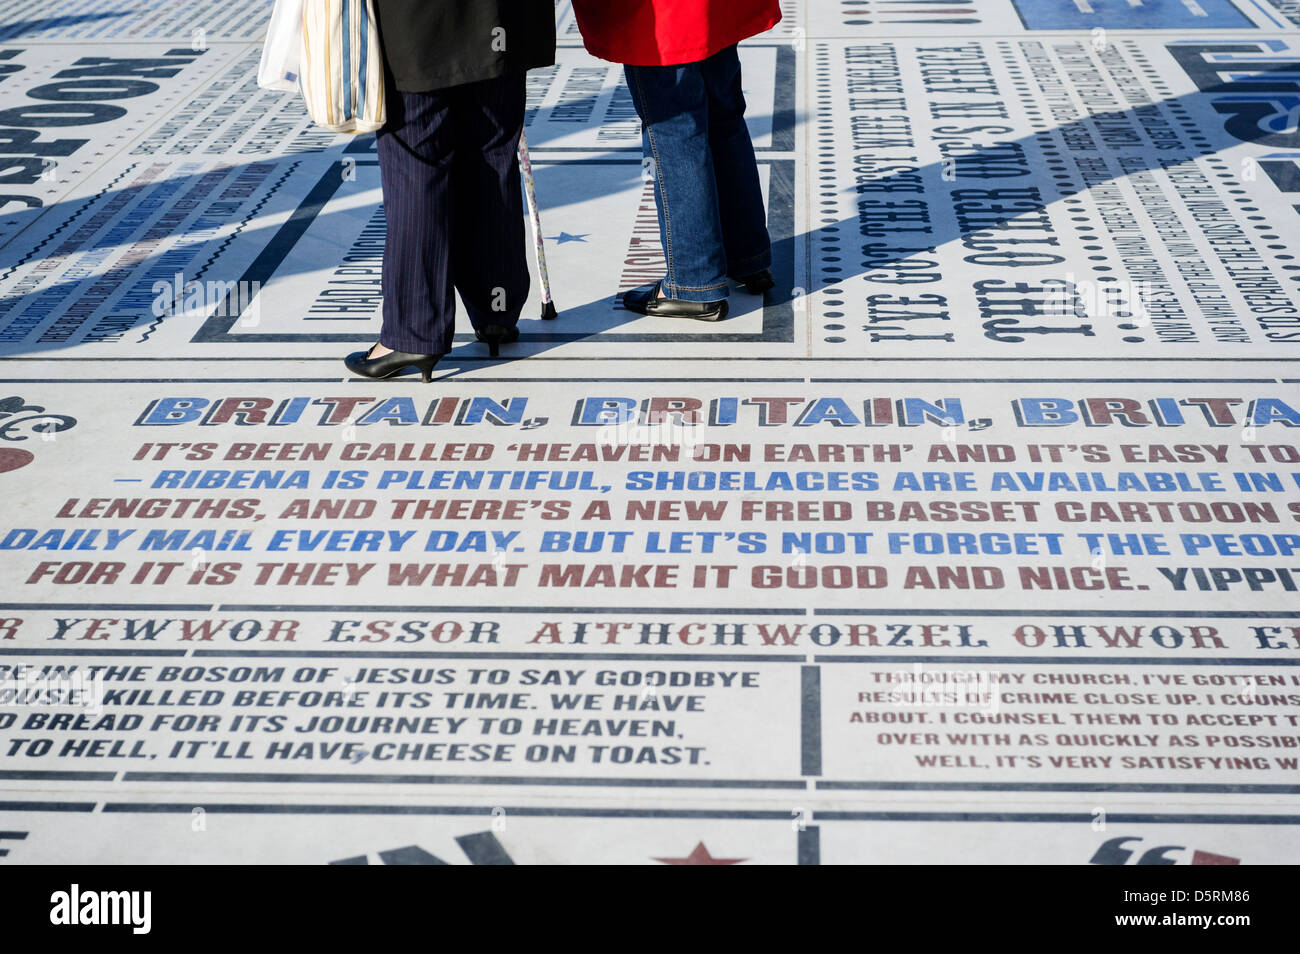 The Comedy Carpet on the seafront in Blackpool, Lancashire, England, UK - Stock Image